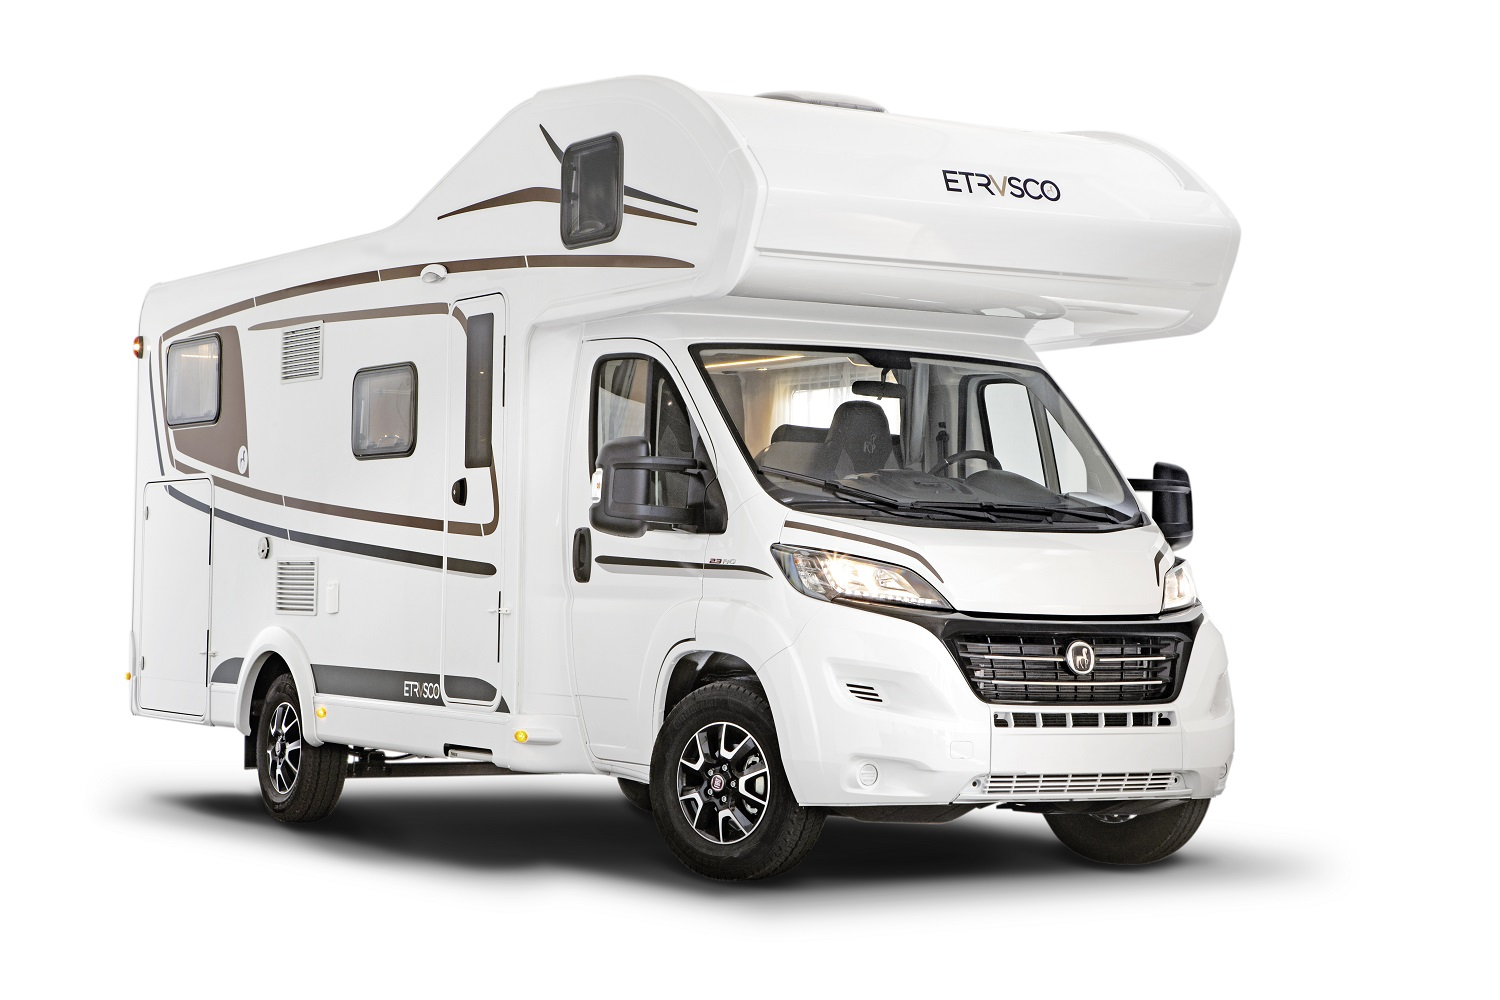 Rent Easy UK Family First Carado A 464 or similar